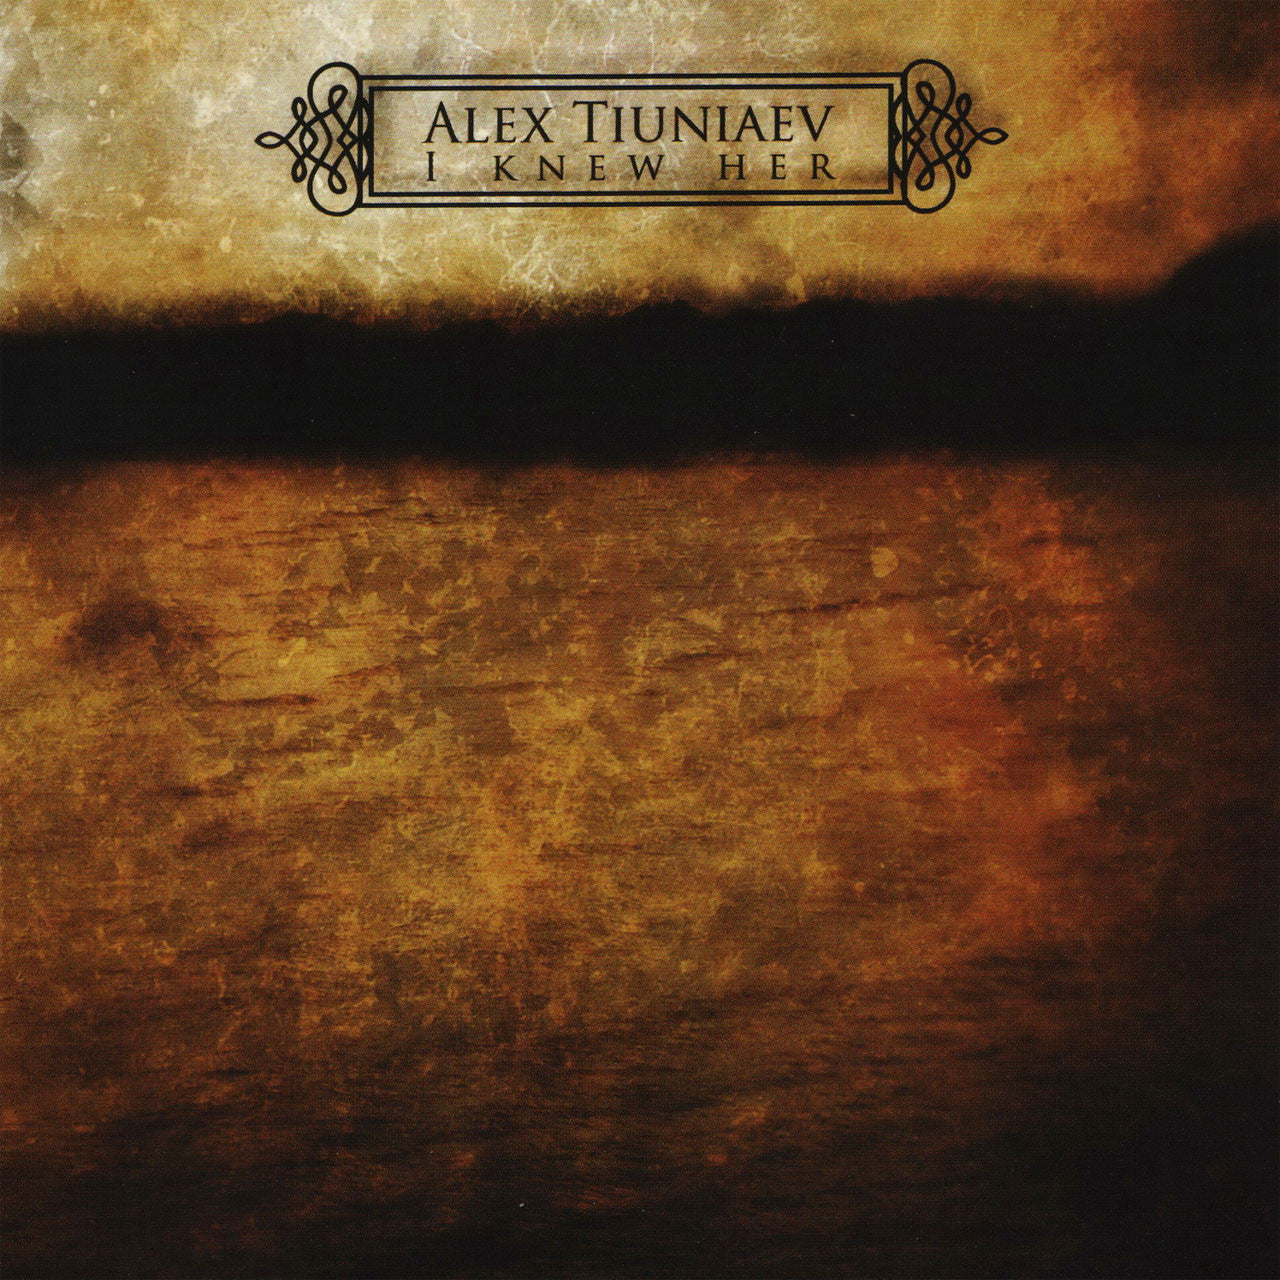 Alex Tiuniaev - I Knew Her (CD)